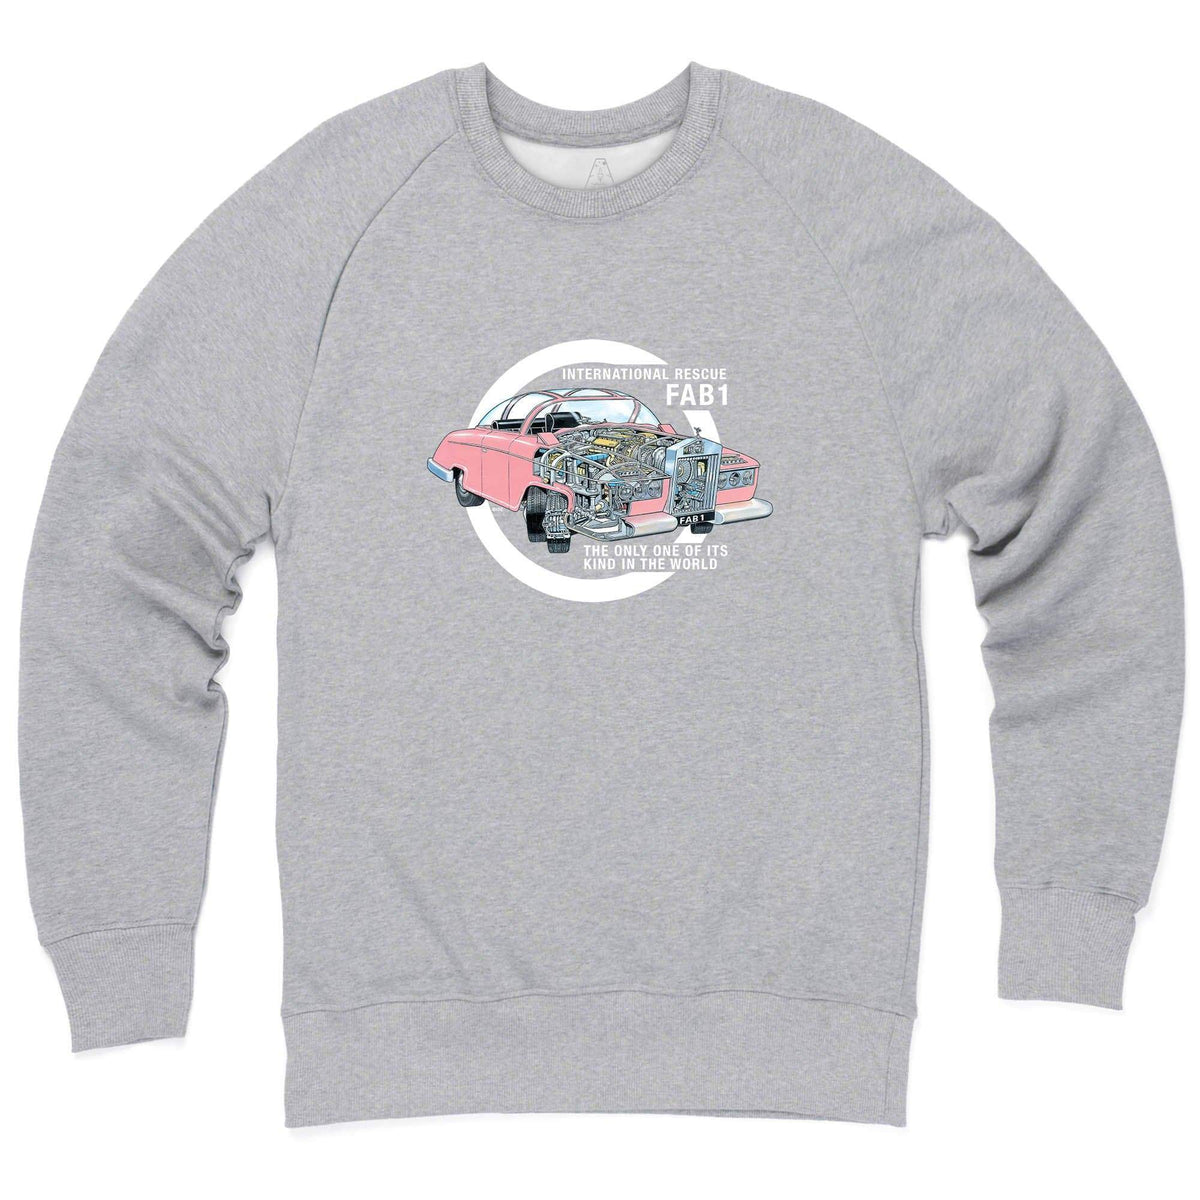 Thunderbirds: Thunderbird FAB 1 Cutaway Sweatshirt [Official & Exclusive] - The Gerry Anderson Store